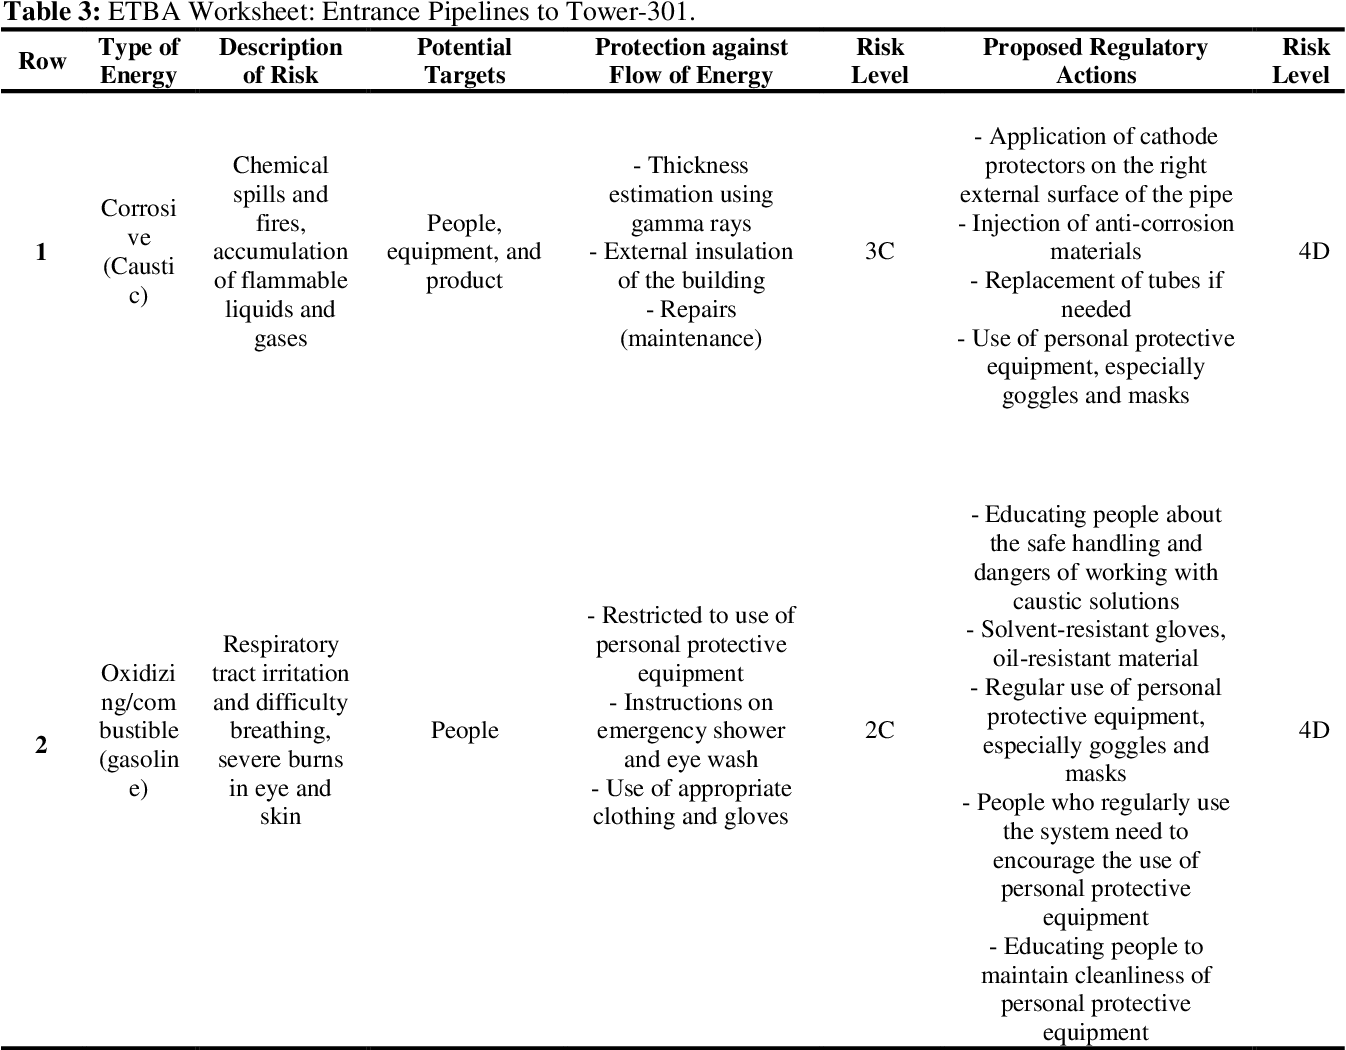 Table 3 From Comparison Of Risk Assessment Using Hazop And